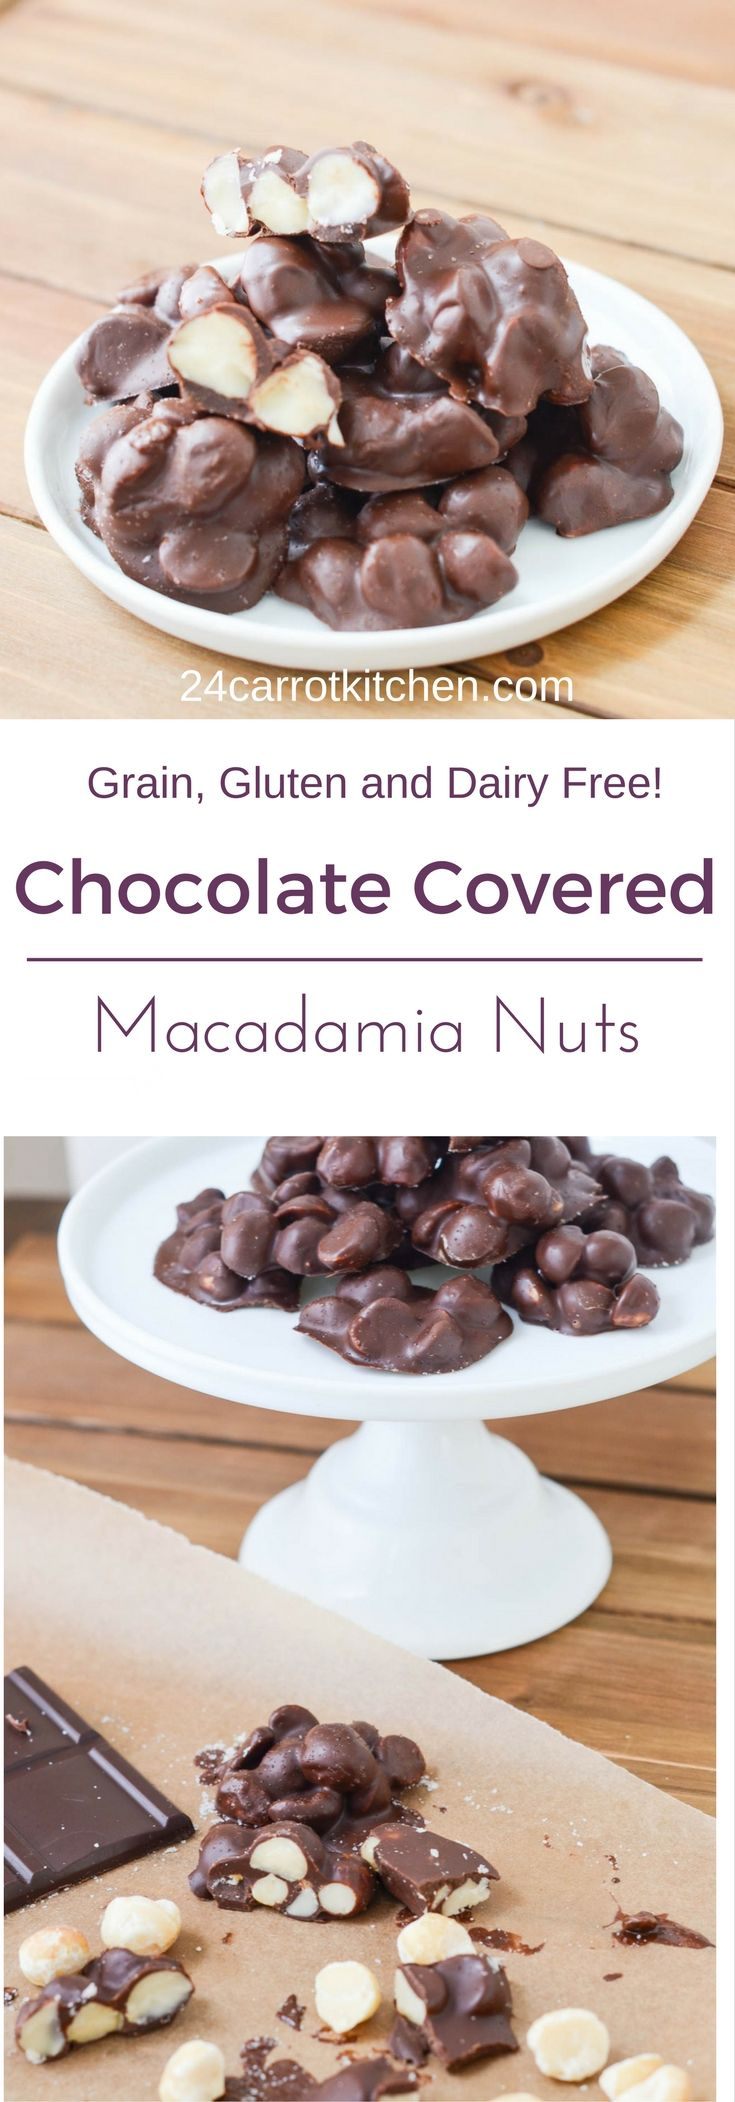 Chocolate Covered Macadamia Nuts - #Paleo #gluten-free #grain-free #dairy-free #vegan #desserts